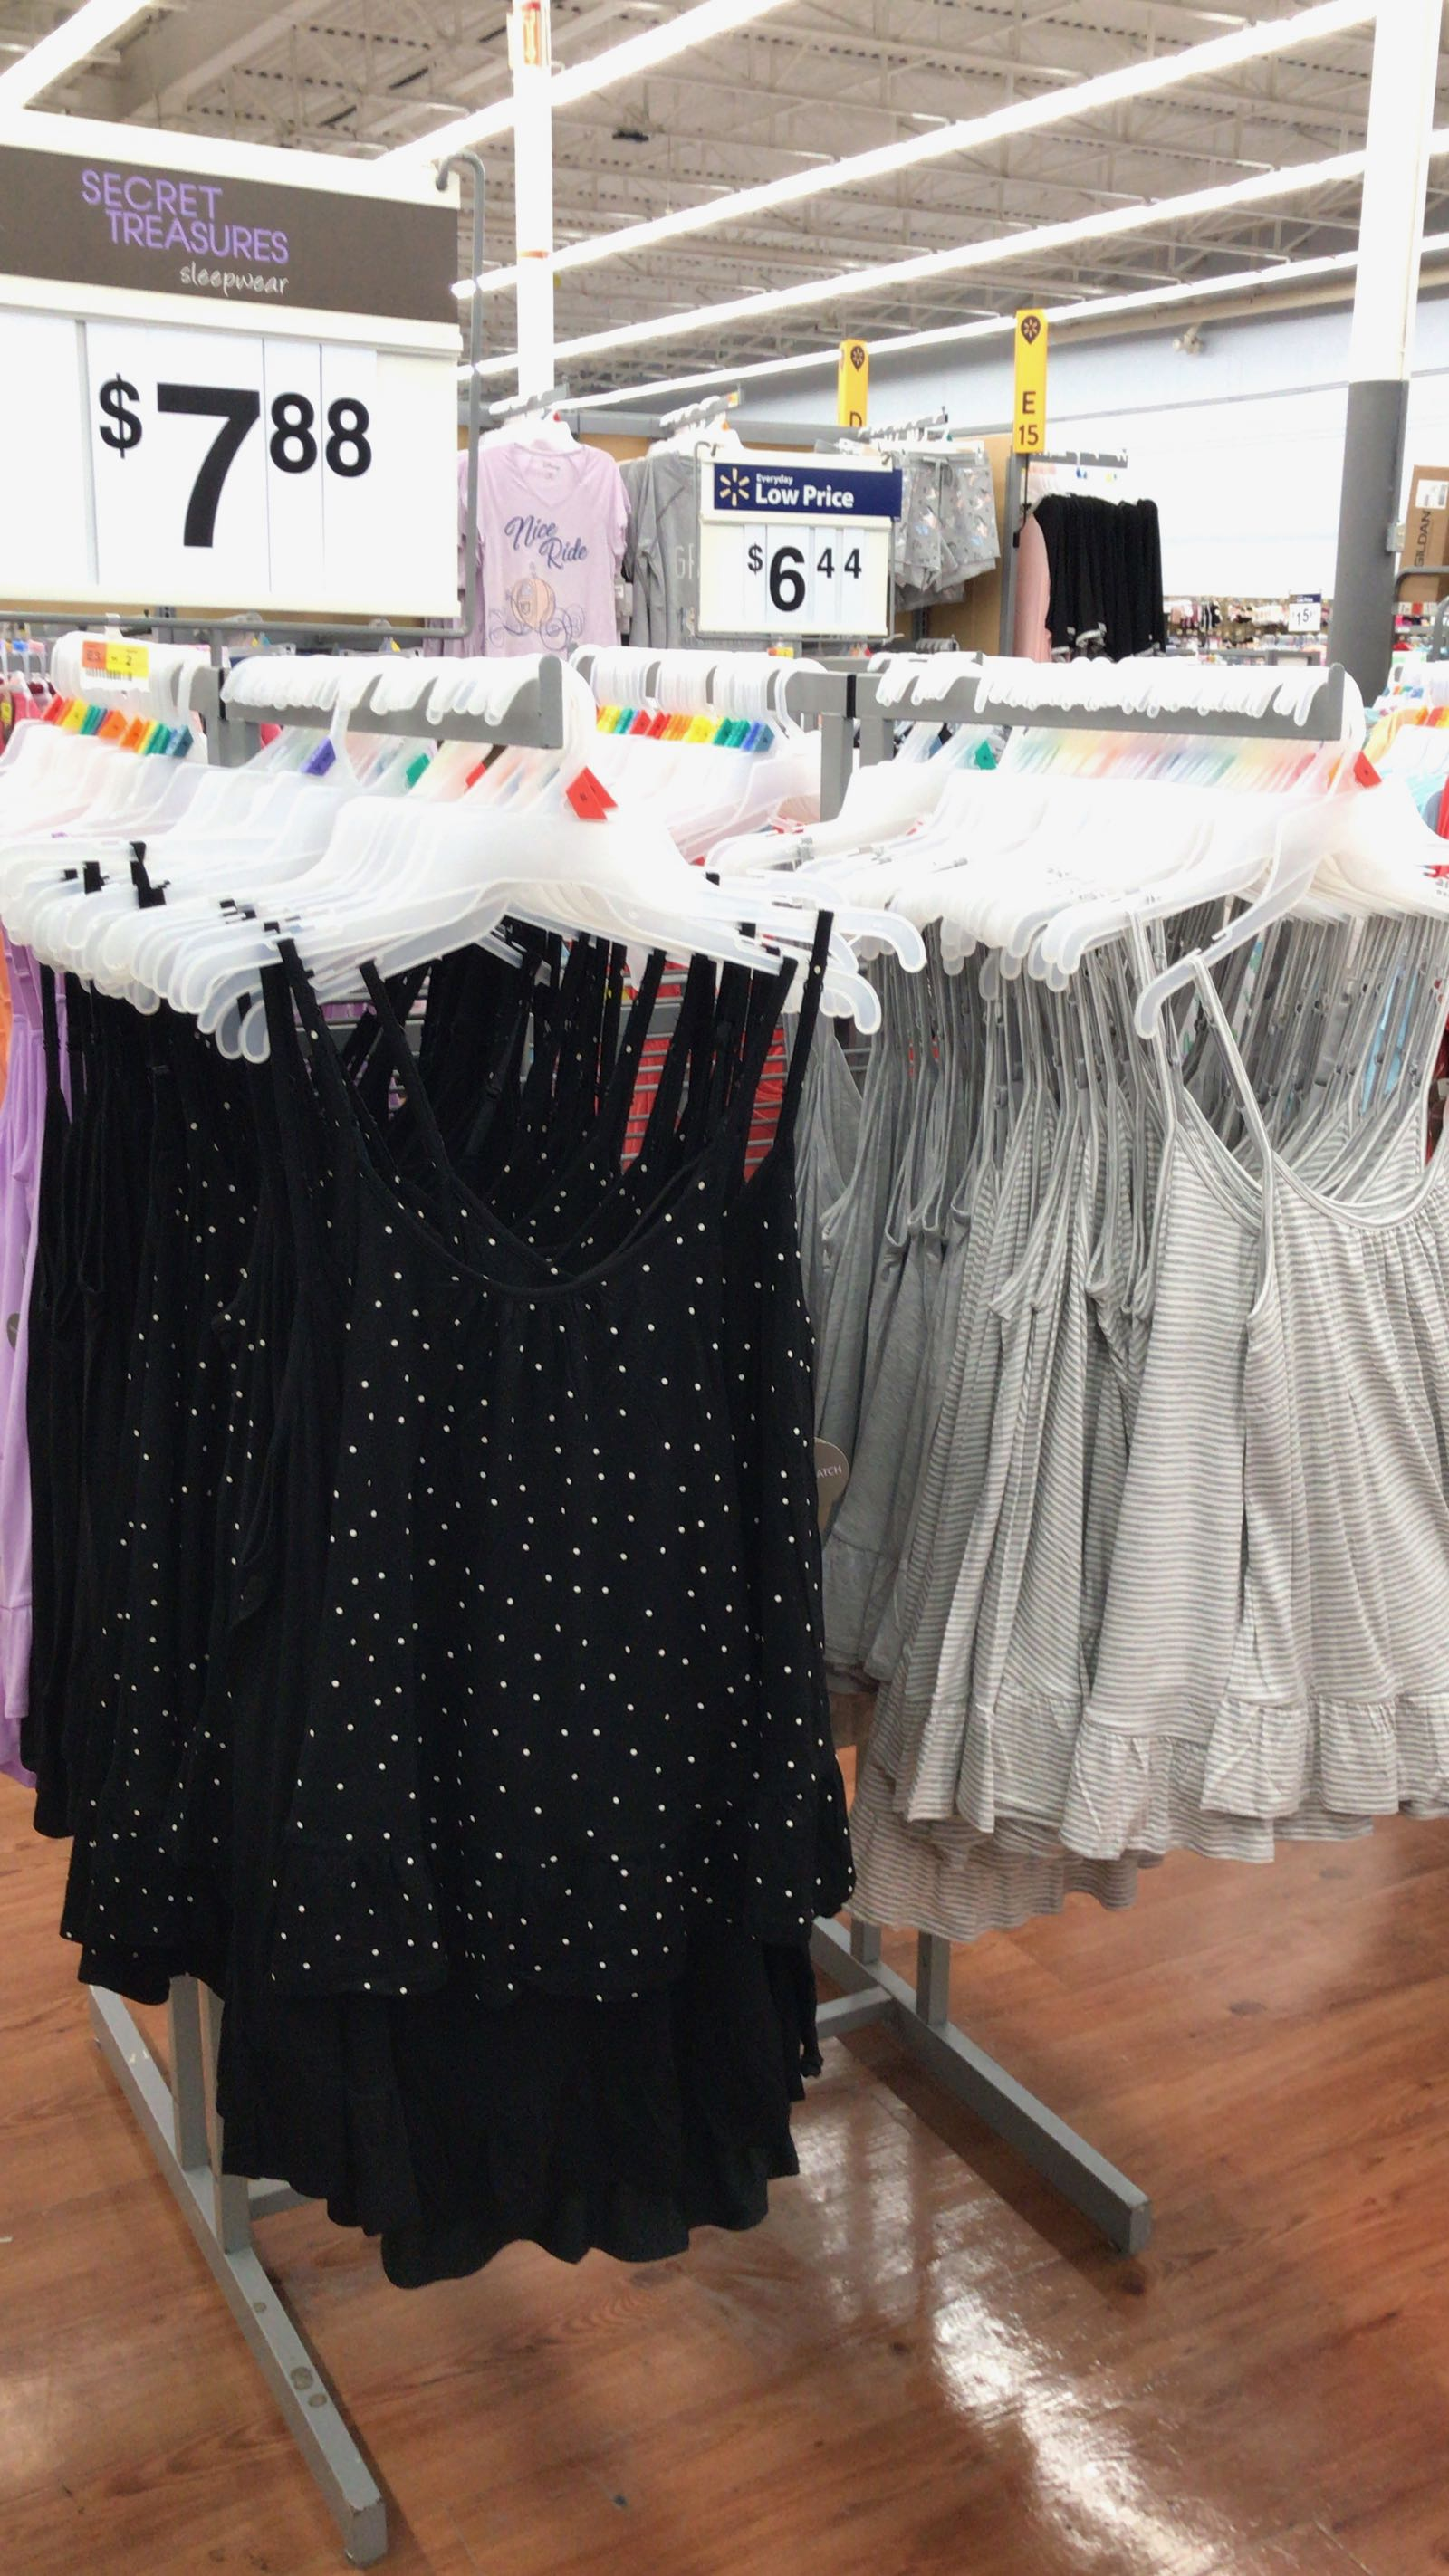 Walmart has bathing suits under $20!